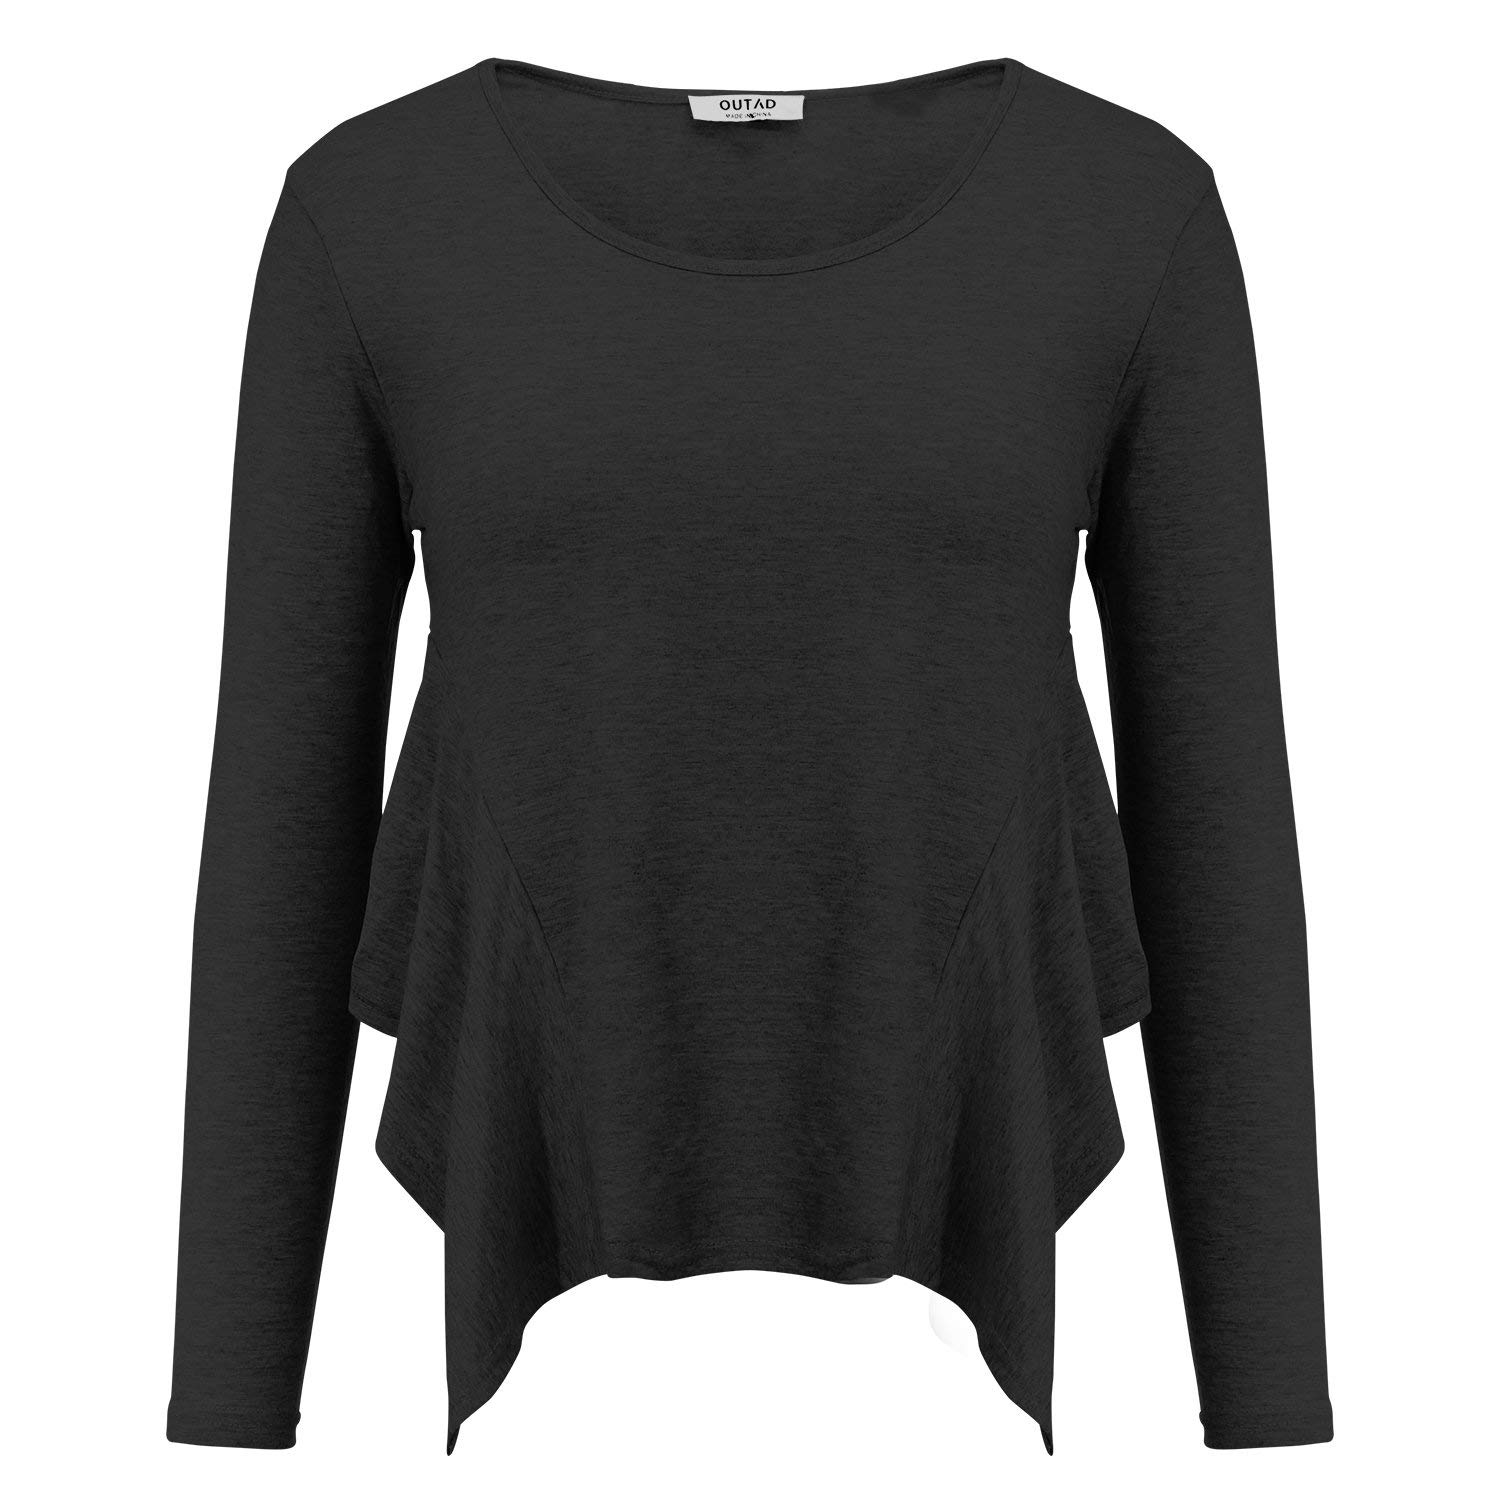 83c25e36092 FISOUL Women's Casual Asymmetrical Hem Tunic T-Shirt Round Neck Long Sleeve  Loose Fit Patched